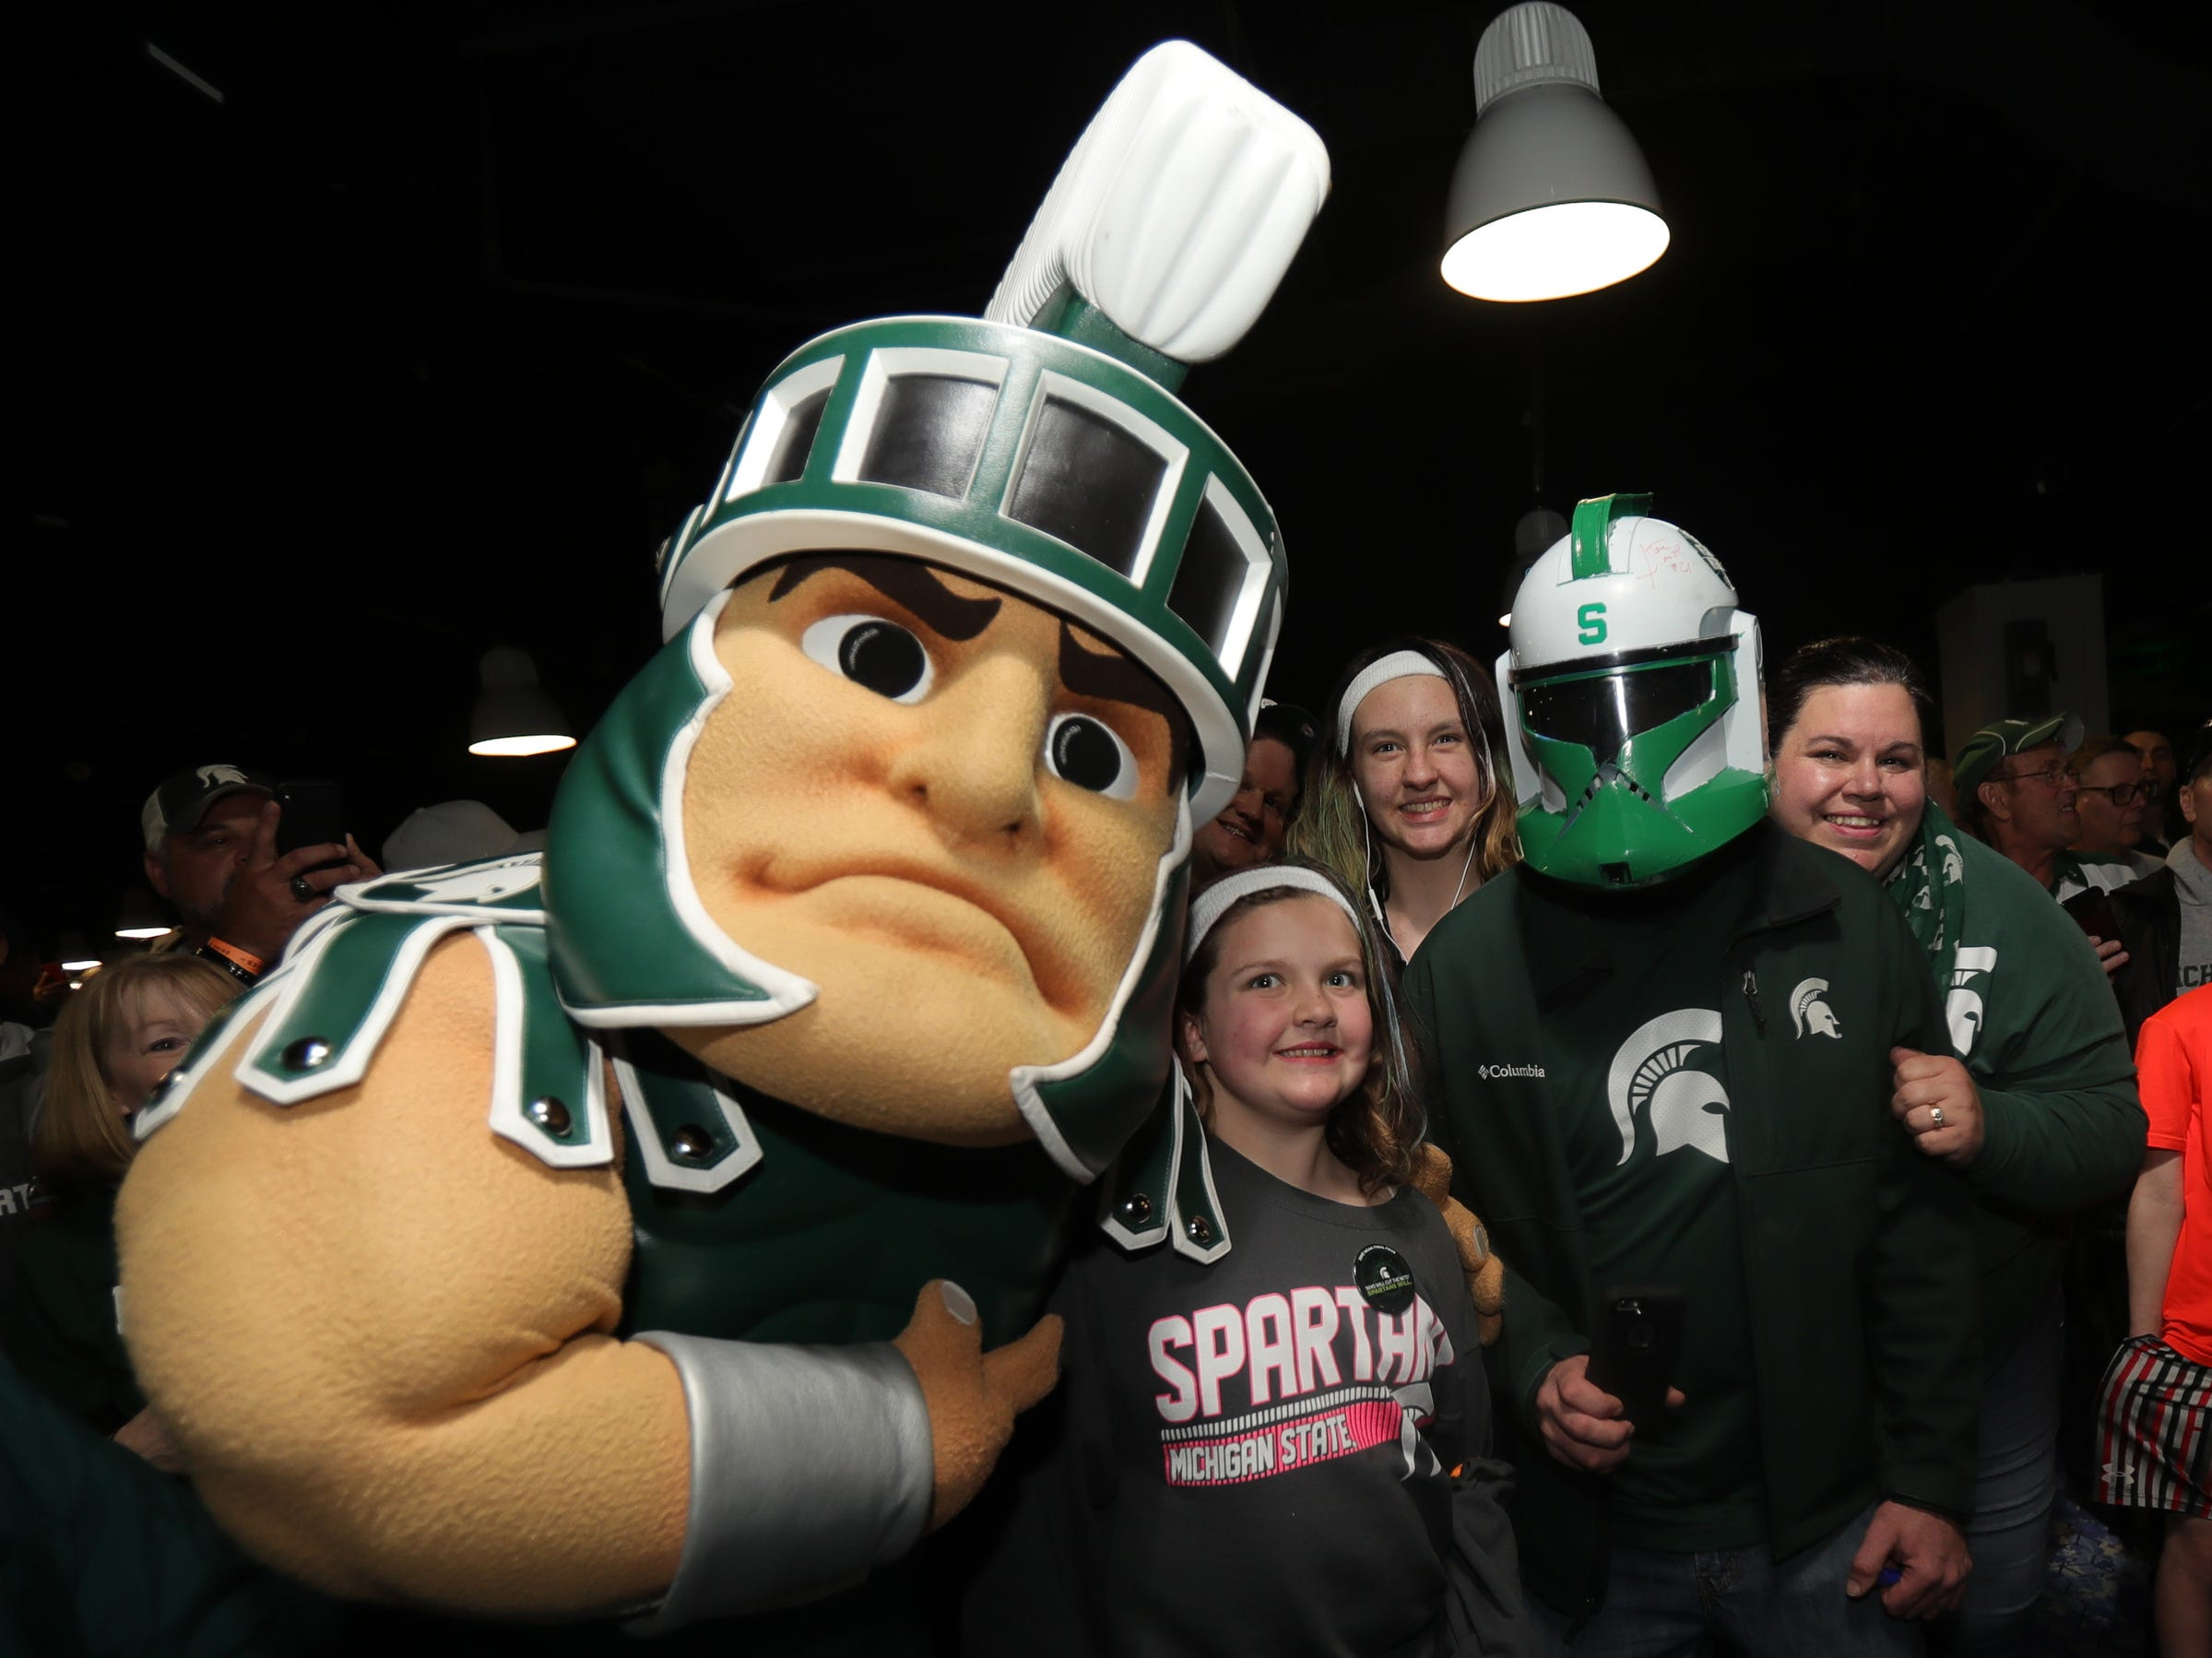 Sparty poses with Michigan State fans Ashley Geib, Madison Geib, Jim Geib and Kristin Geib cheer during a rally before the MSU NCAA semifinal game against Texas Tech, Friday, April 5, 2019 at US Bank Stadium in Minneapolis.